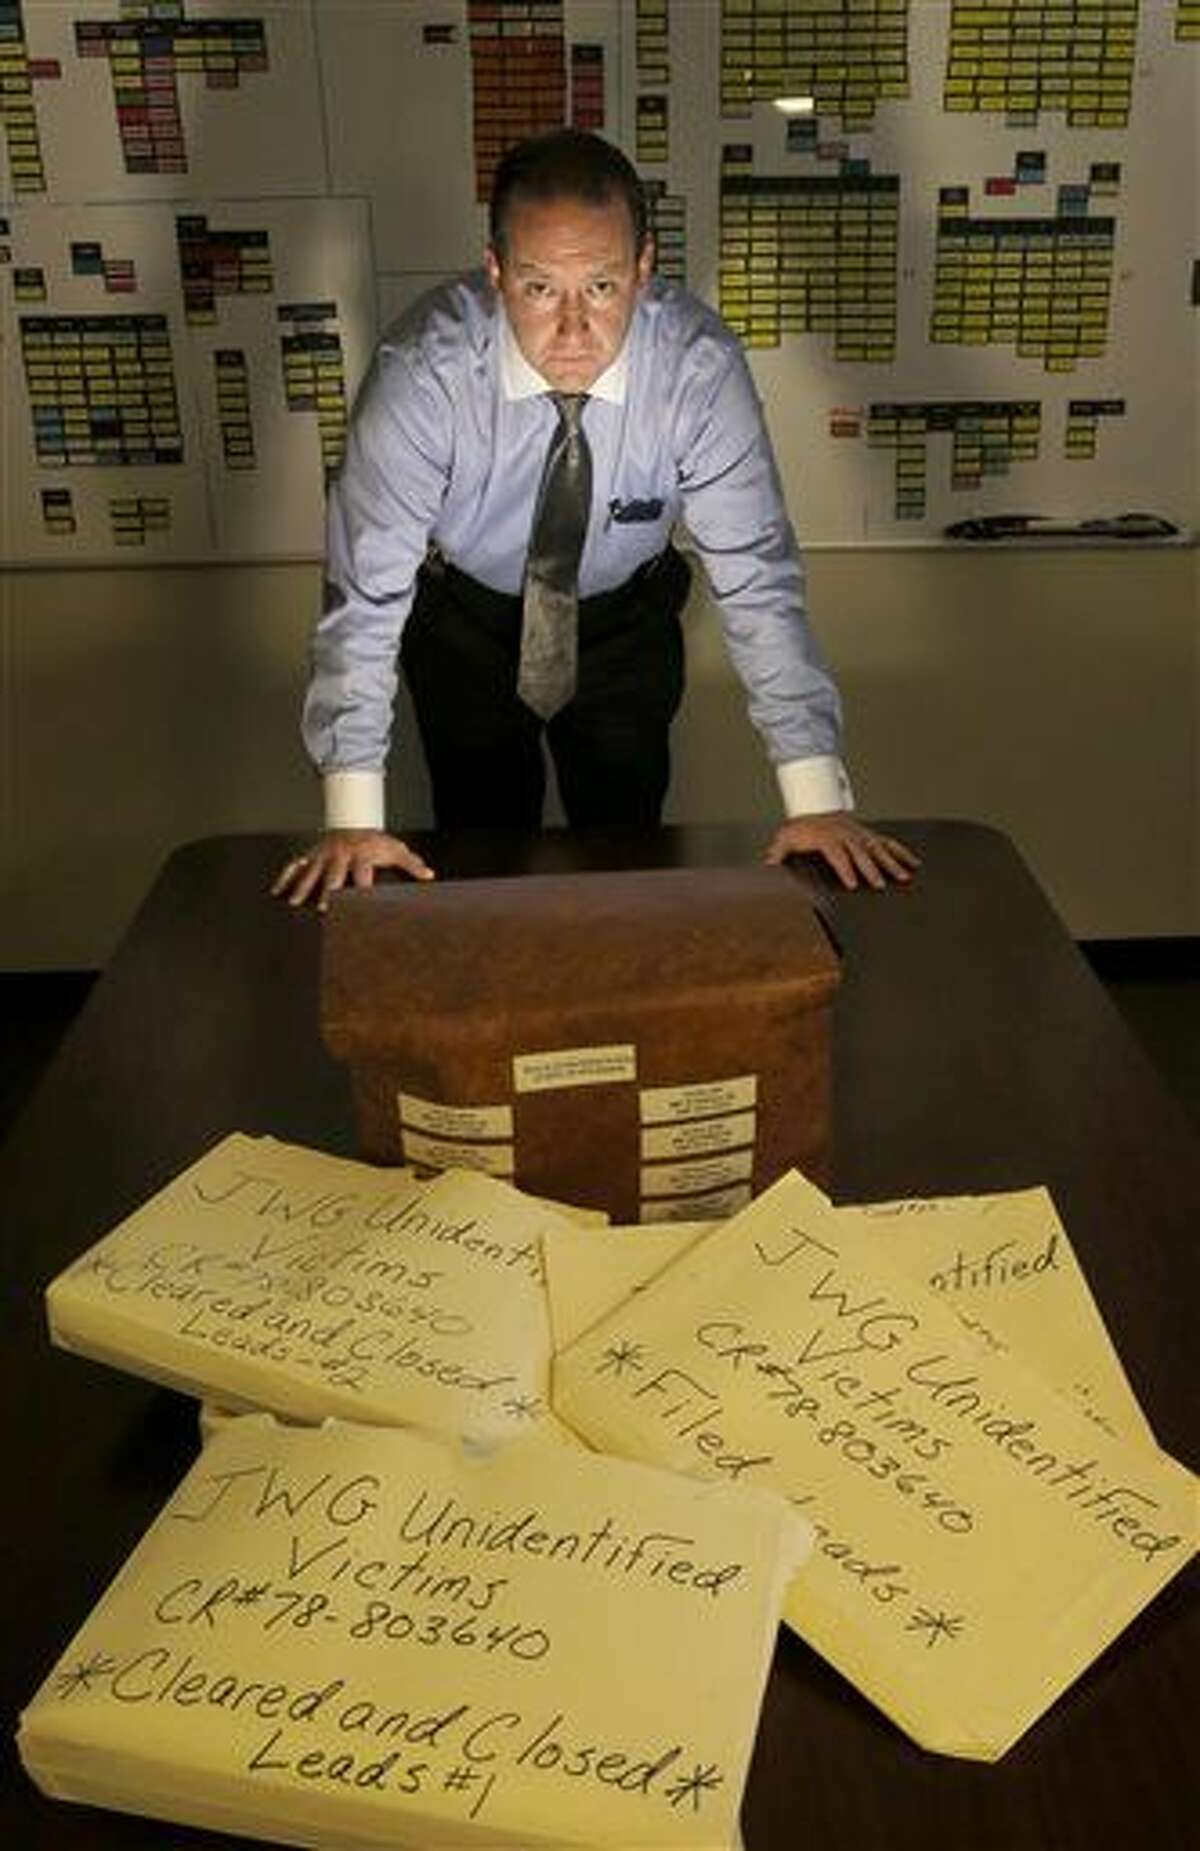 In this Thursday, Dec. 3, 2015 photo, Cook County Sheriff's Detective Jason Moran poses for a portrait with his case files of unidentified victims of serial killer John Wayne Gacy in Maywood, Ill. While working to identify these victims, Moran has cleared 11 cold cases across America that had nothing to do with Gacy. (AP Photo/Charles Rex Arbogast)